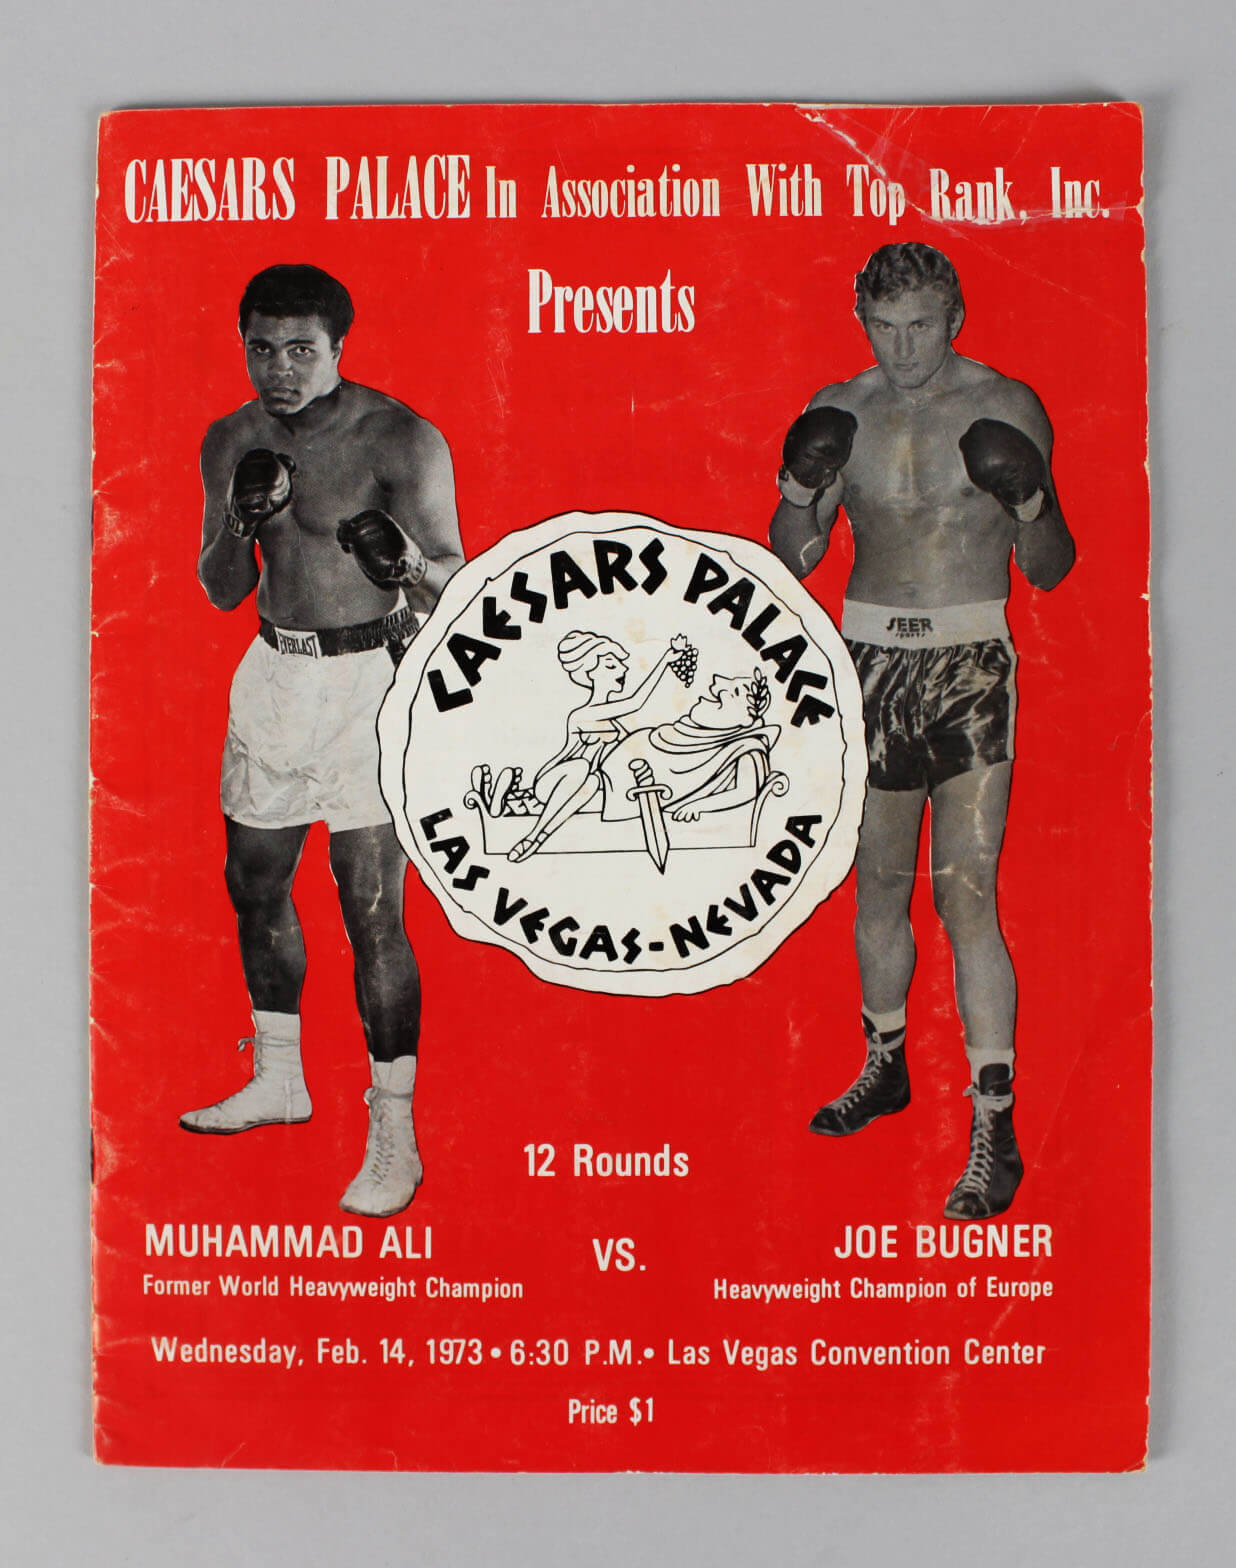 Caesars Palace Boxing – Feb. 14, 1973 – Muhammad Ali vs. Joe Bugner Fight Program61102_01